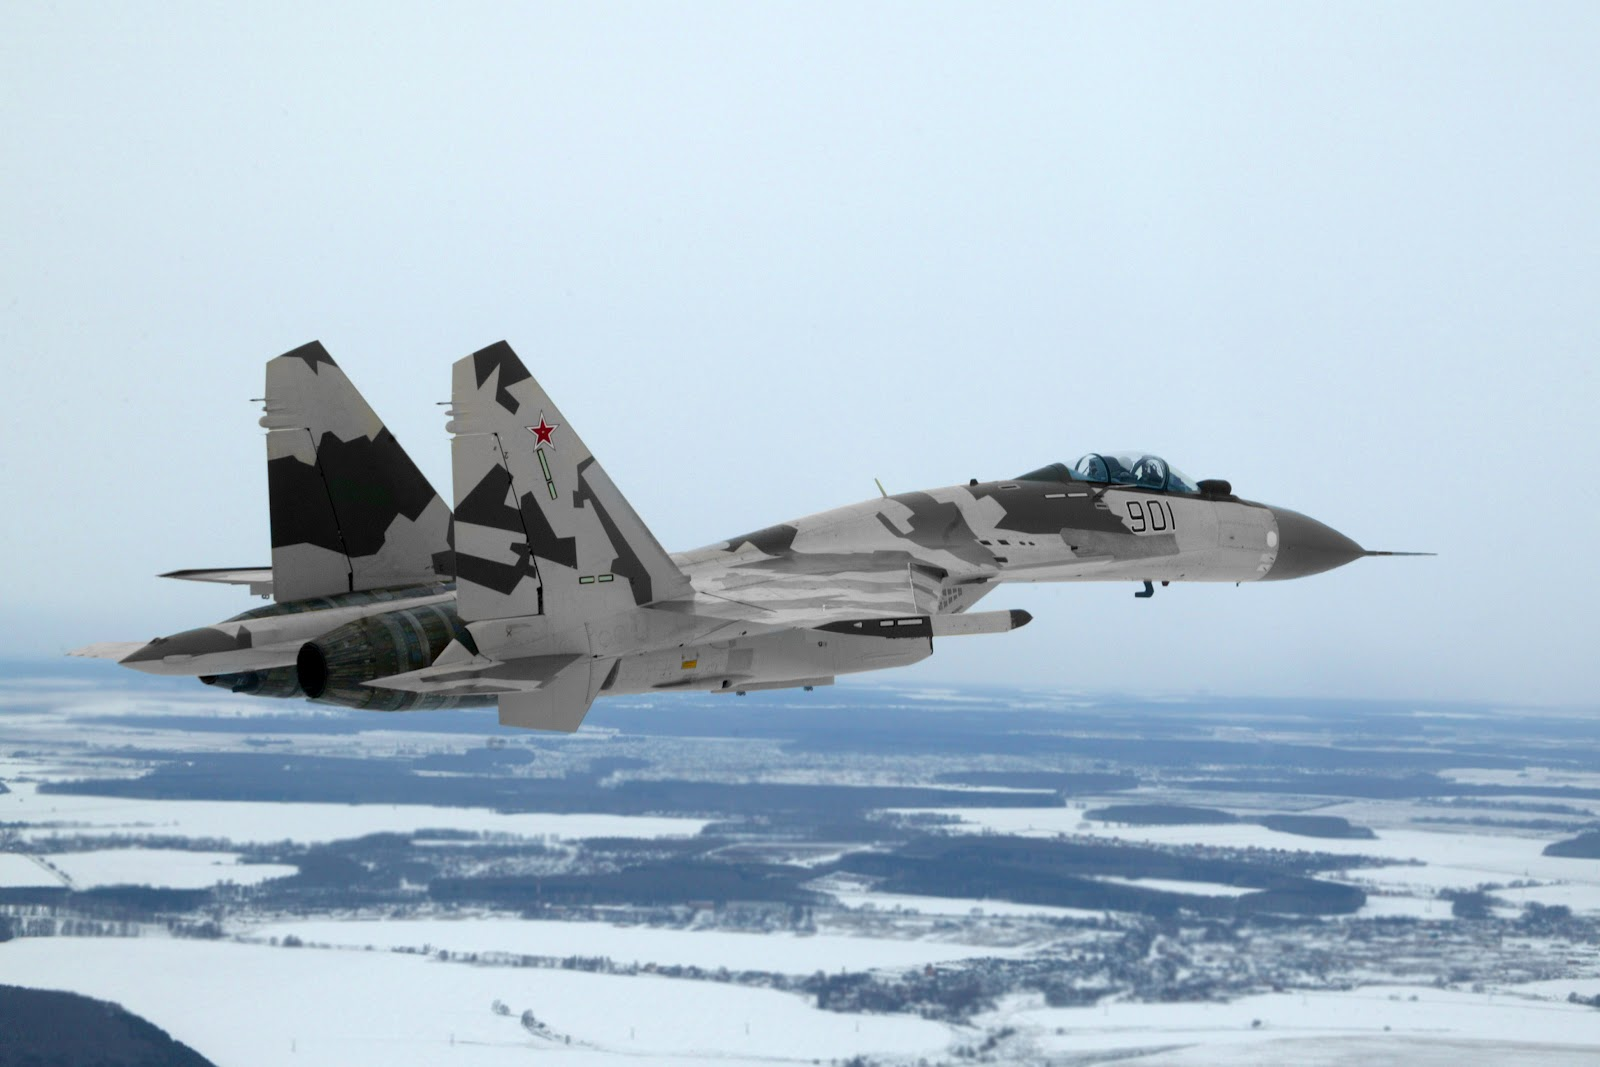 military picture sukhoi su - photo #9